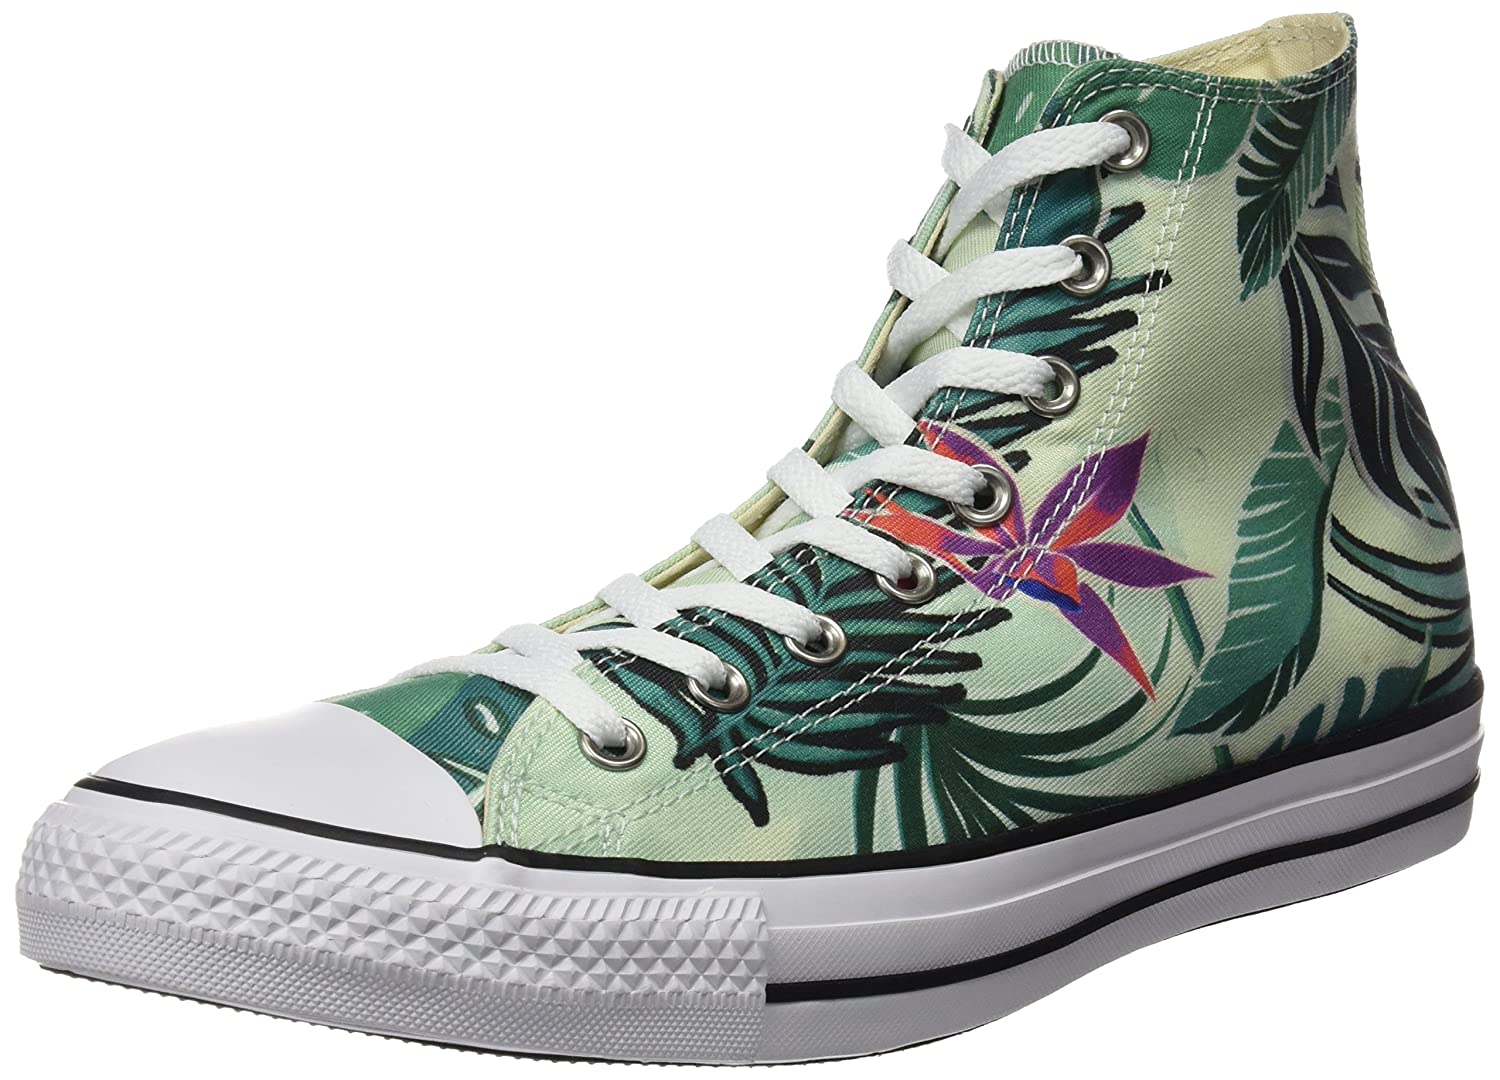 a75643d3359b Amazon.com  Converse Chuck Taylor All Star Tropical Print -  Fibreglass Menta White (Floral) Womens Trainers 5 US  Shoes